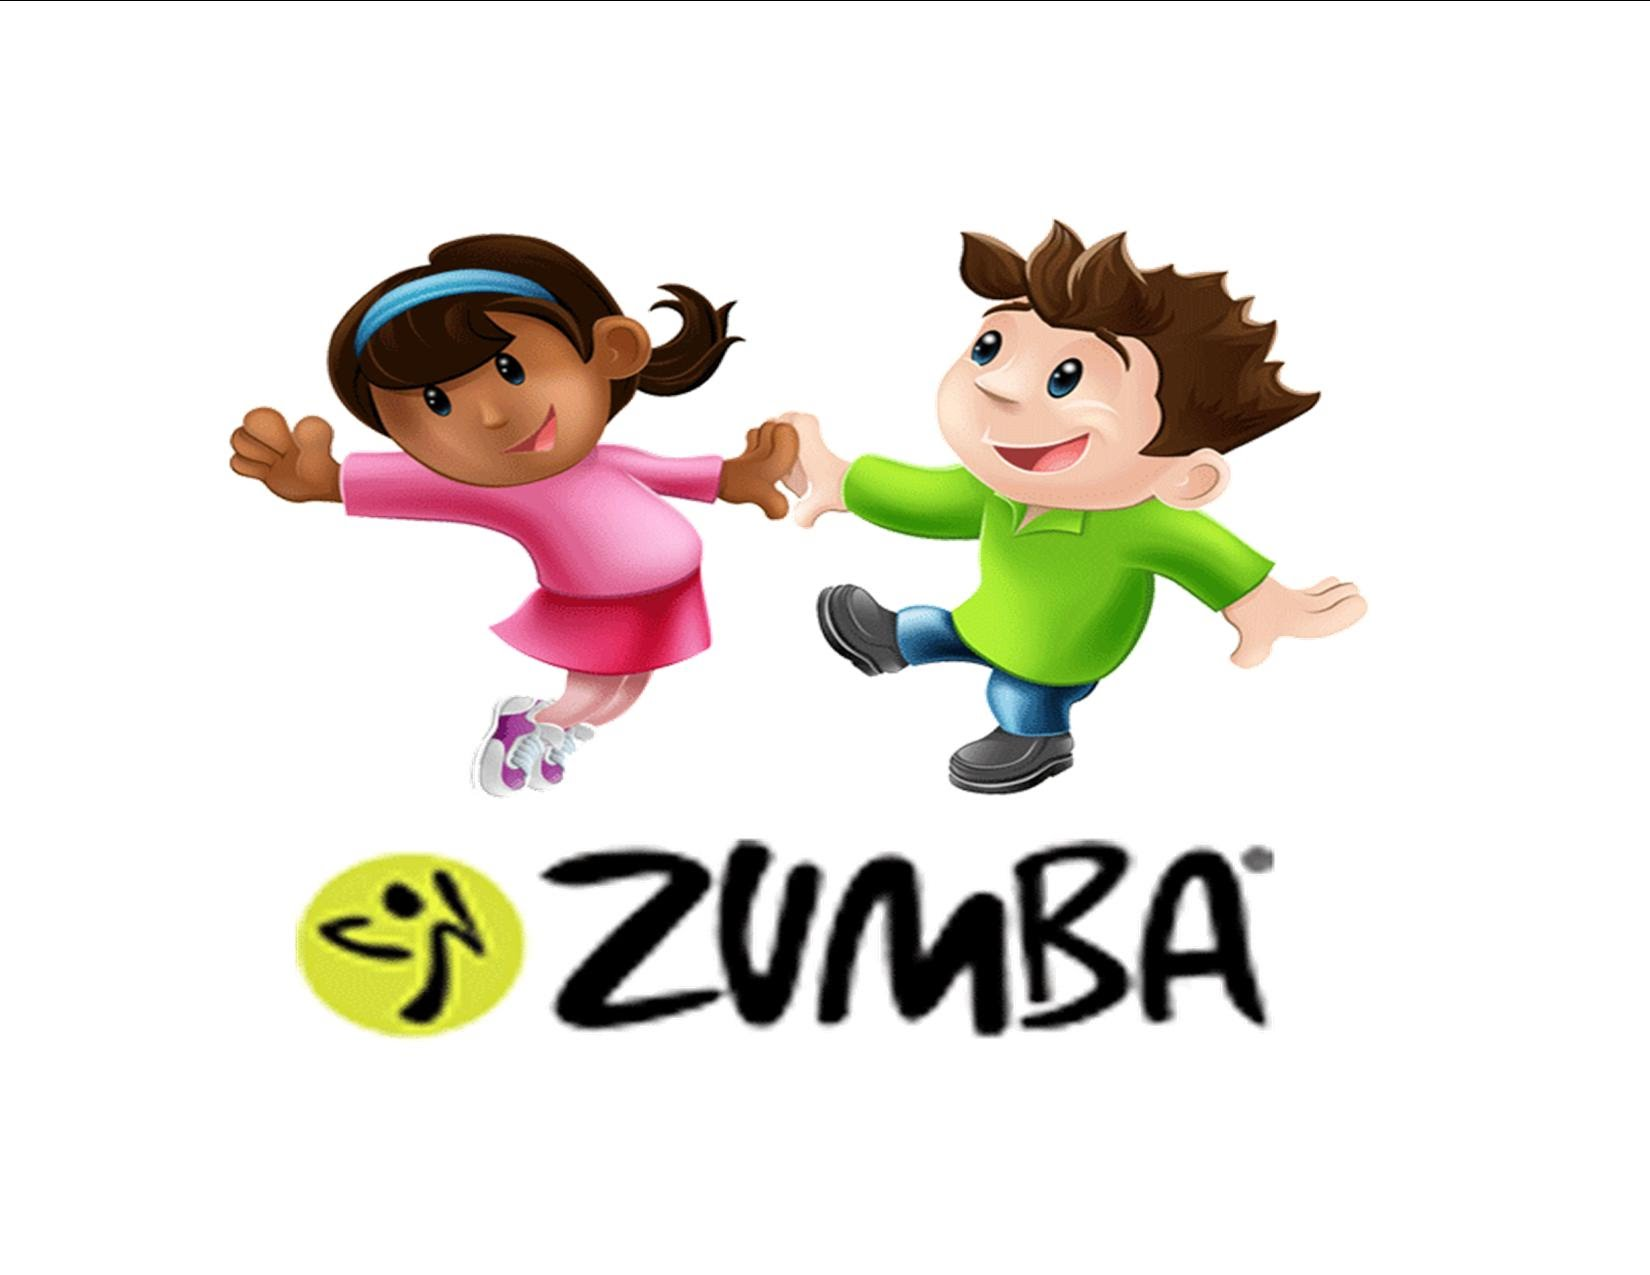 All about zumba kids youtube clip art